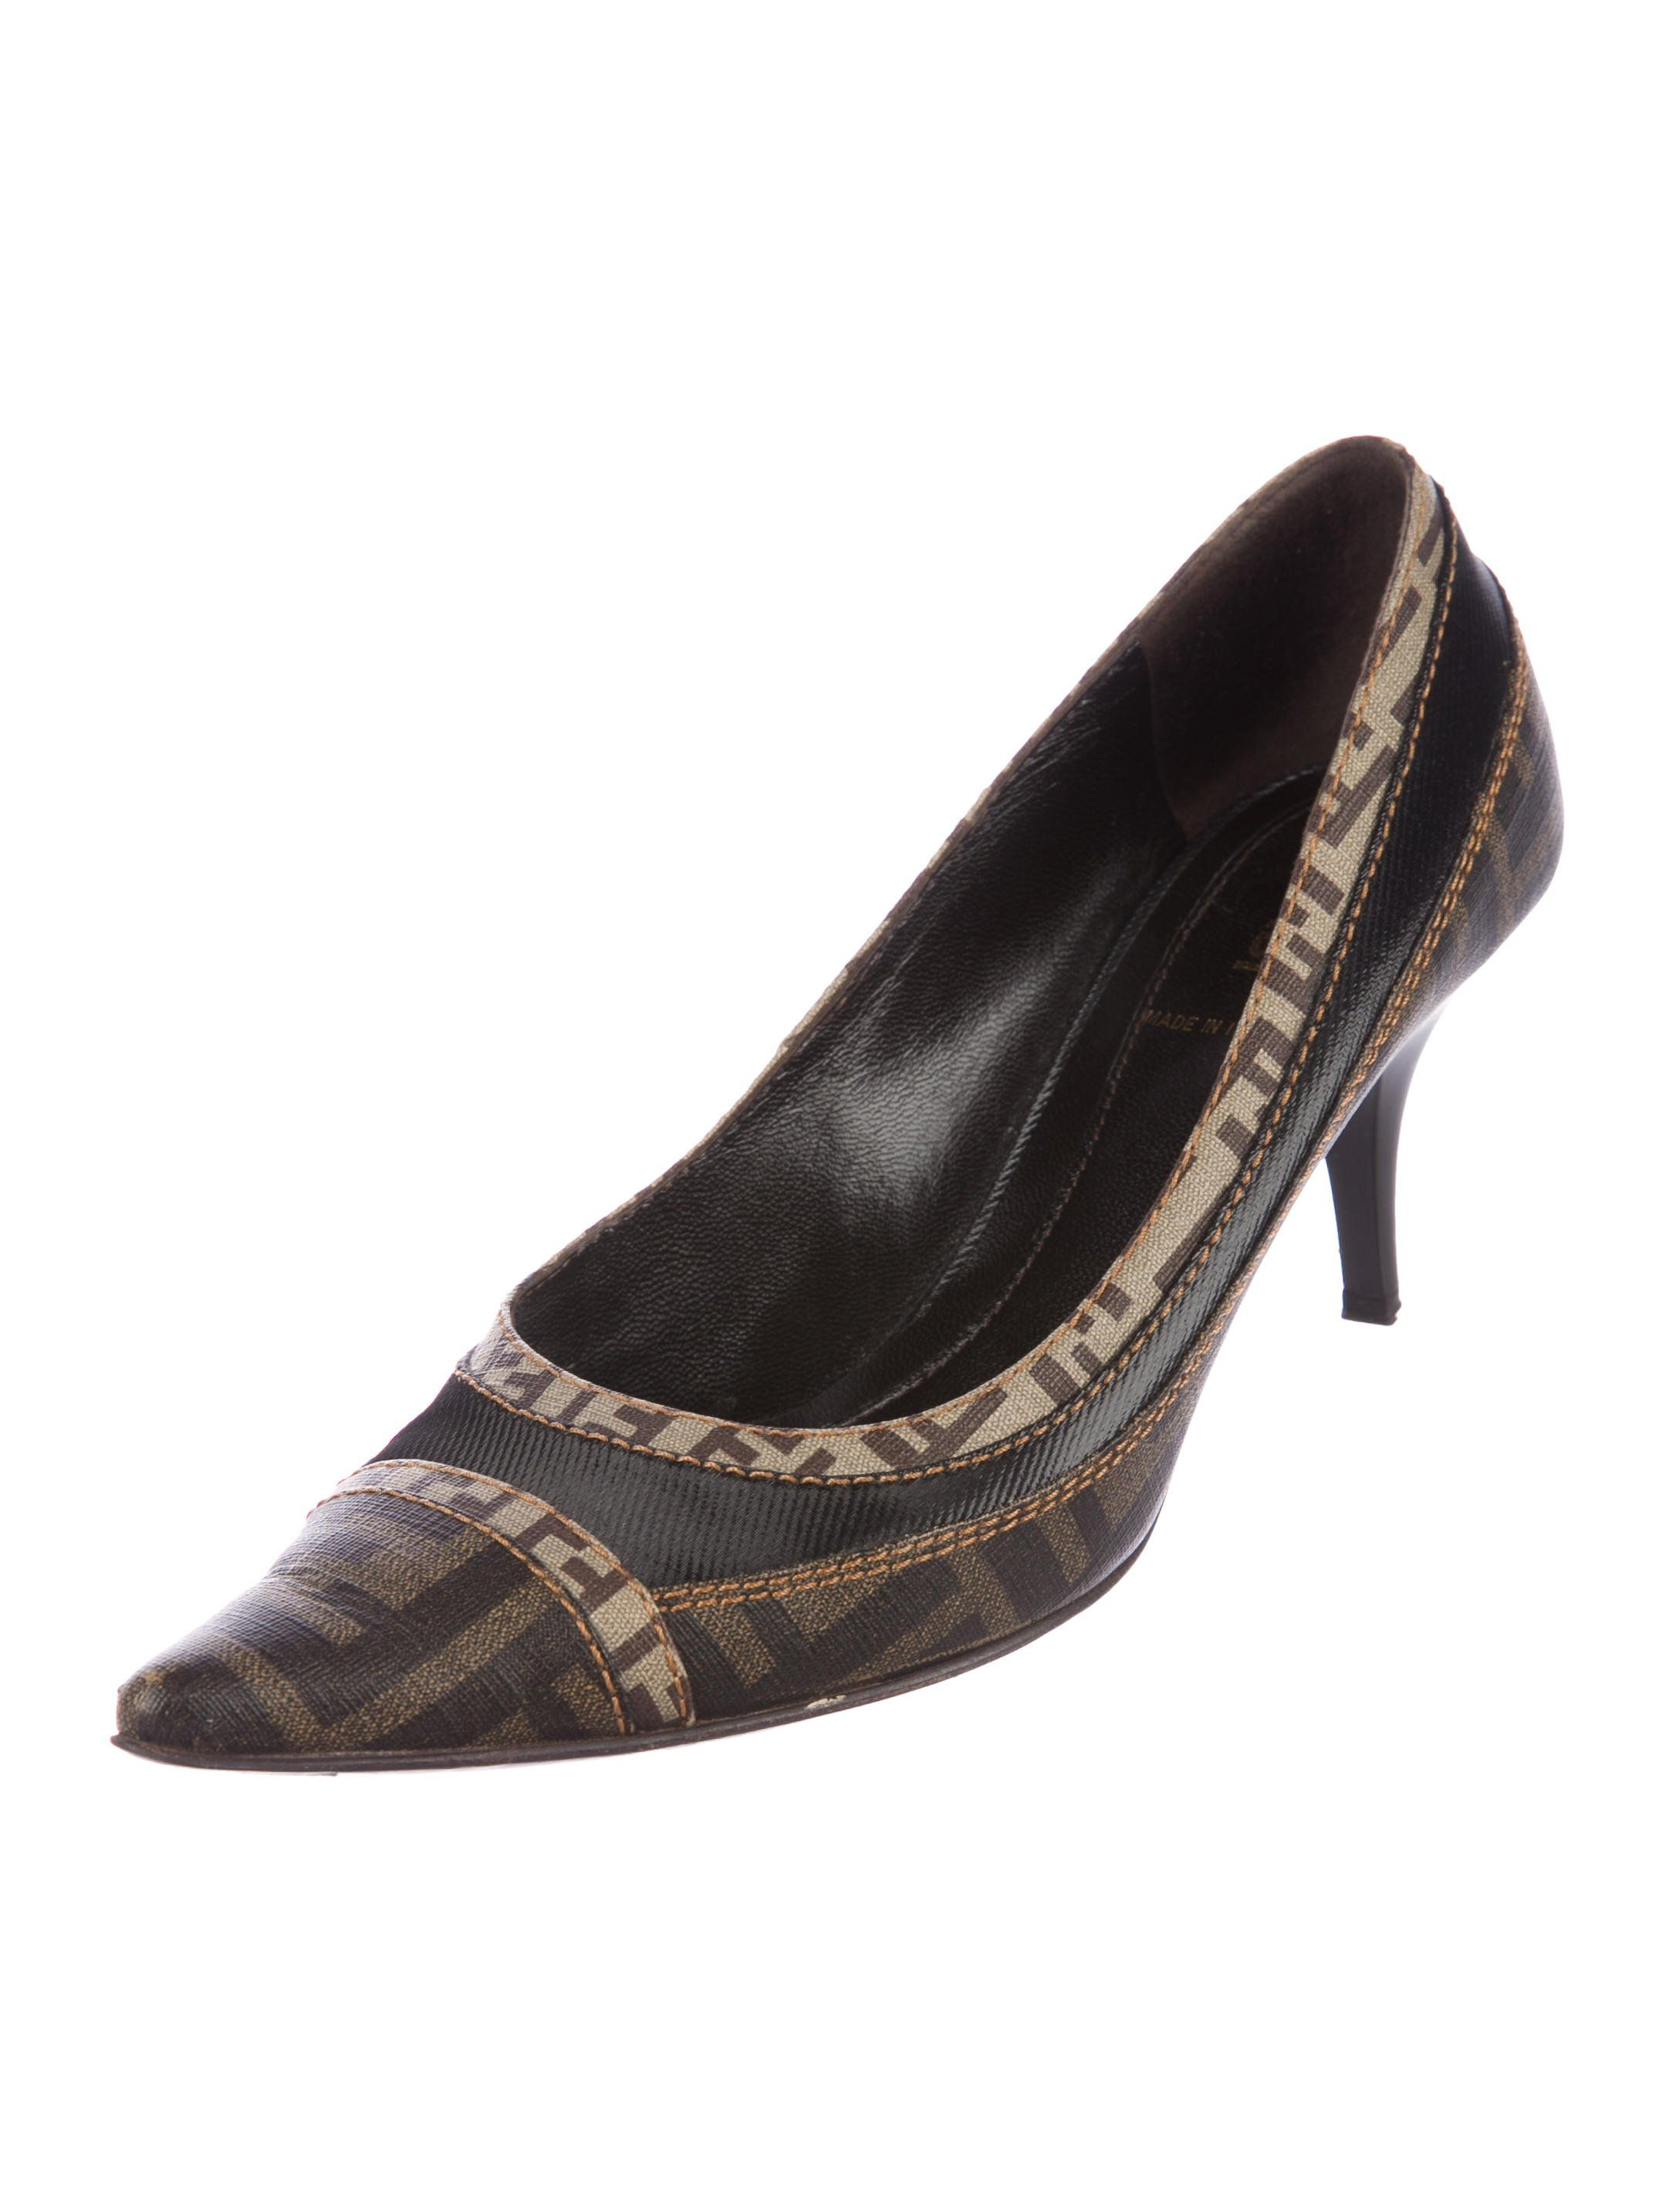 29b2ecf90f Zucca Pointed-Toe Pumps | Made for Walking | Pointed toe pumps, Pump ...